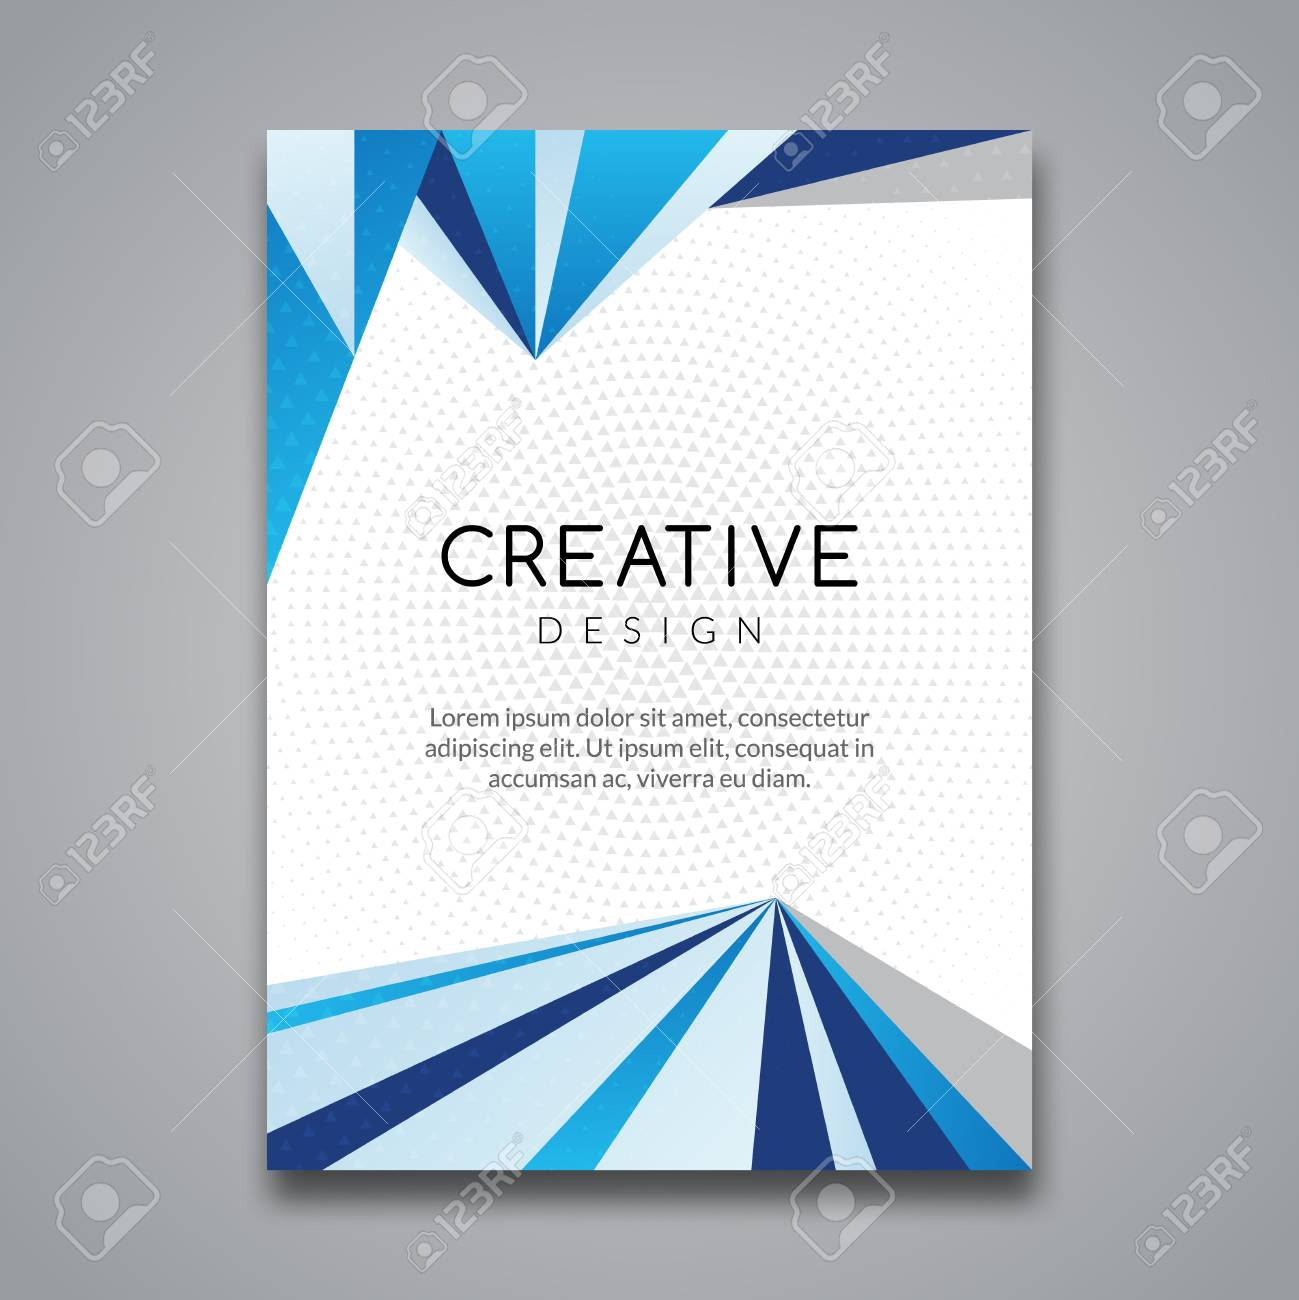 business report design flyer template background with colorful